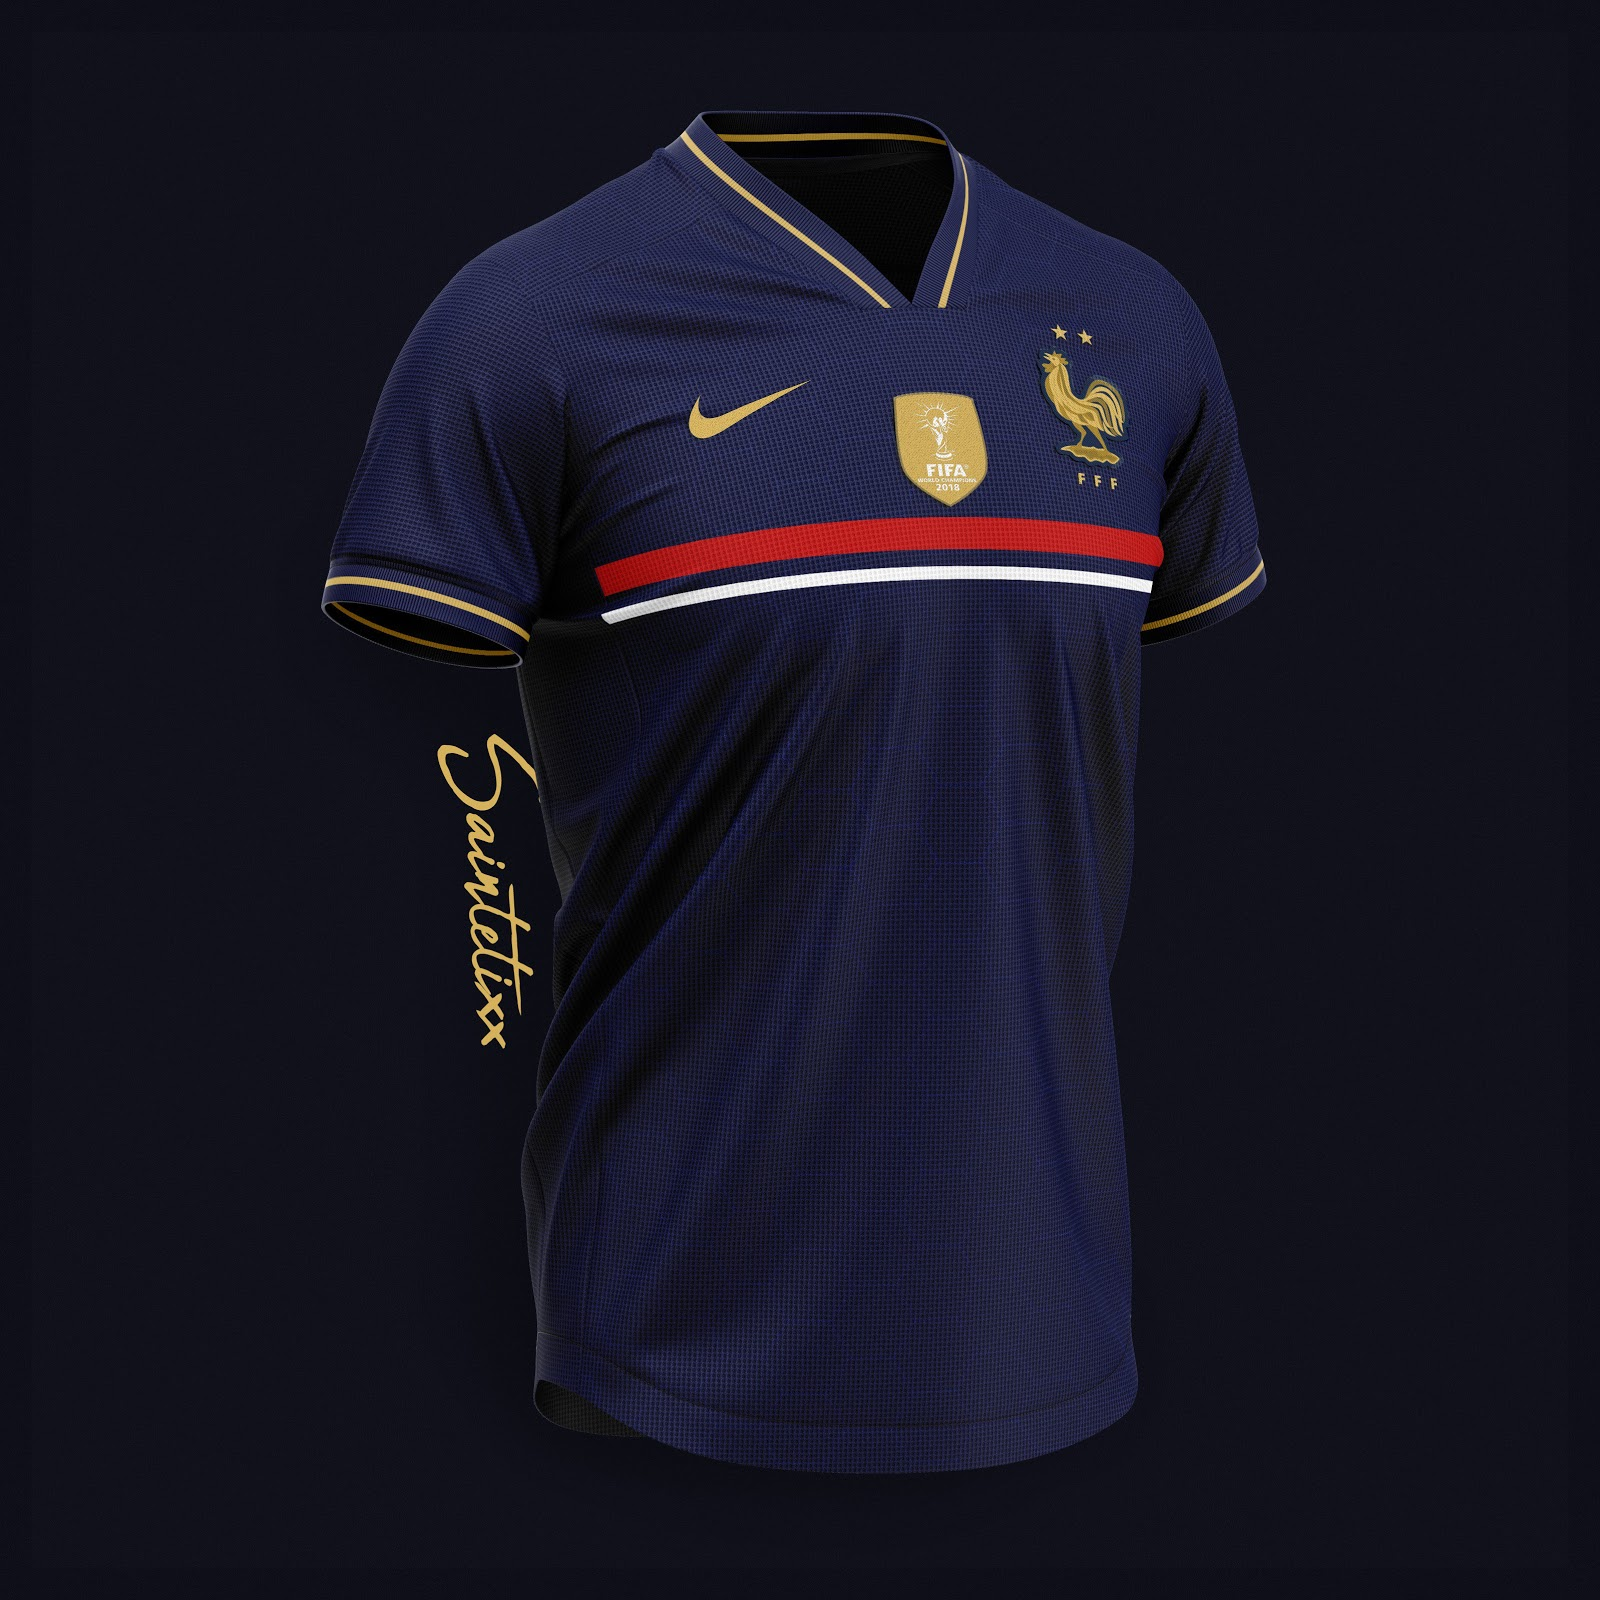 quality design e4358 a59c9 Stunning Nike France 2019 Concept Kits By Saintetixx - Footy ...